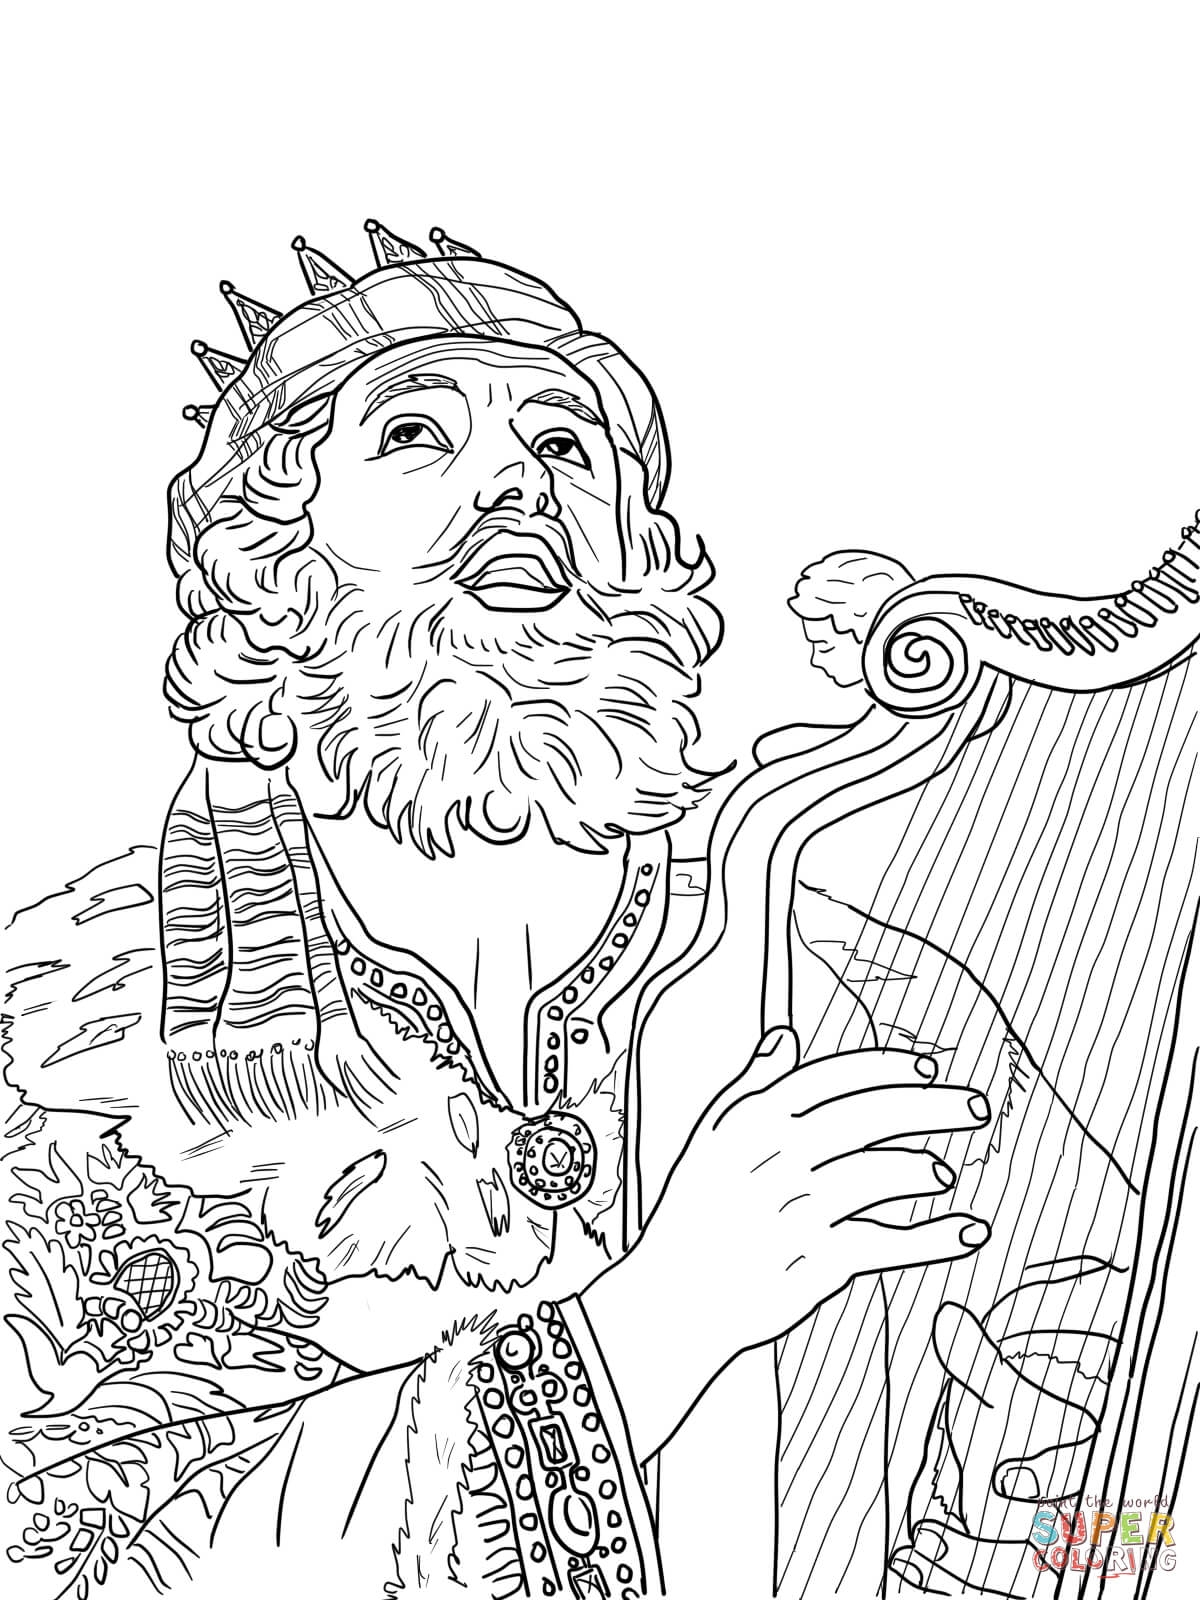 Esther Coloring Pages - Ausmalbild König David Spielt Auf Der Harve